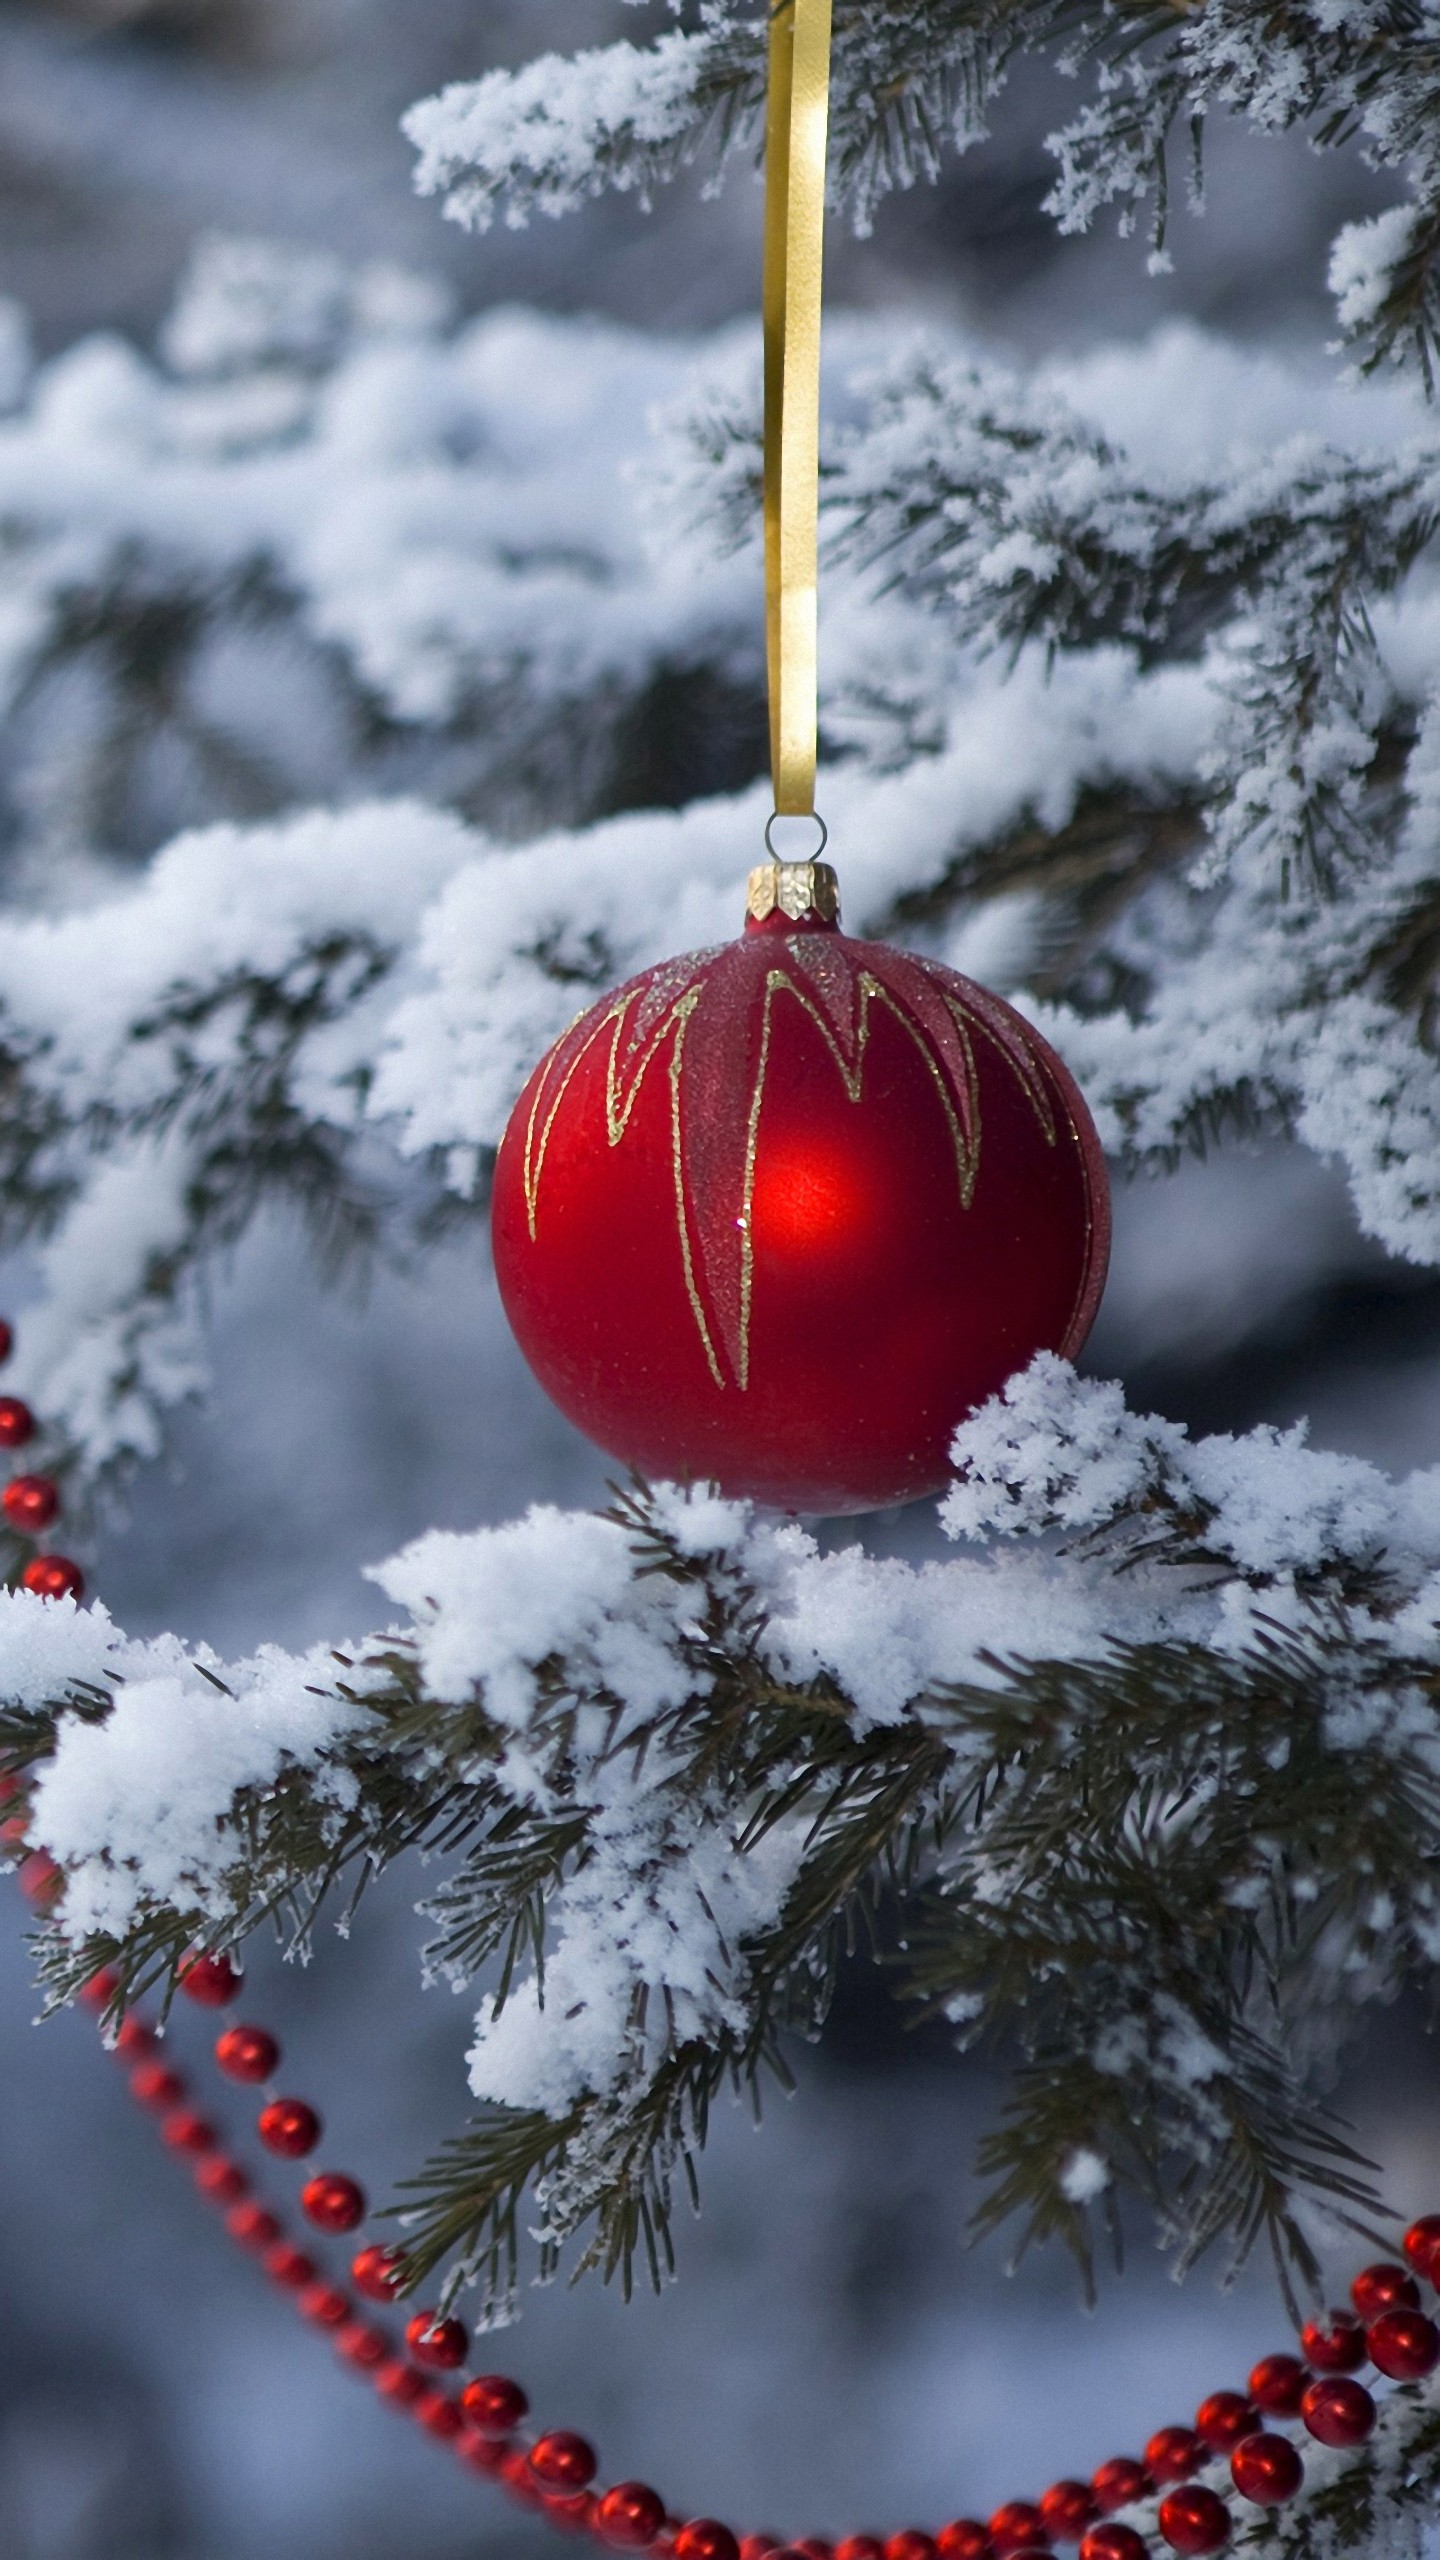 Falling Snow Wallpaper Animated Iphone Snow Christmas Wallpaper 59 Images